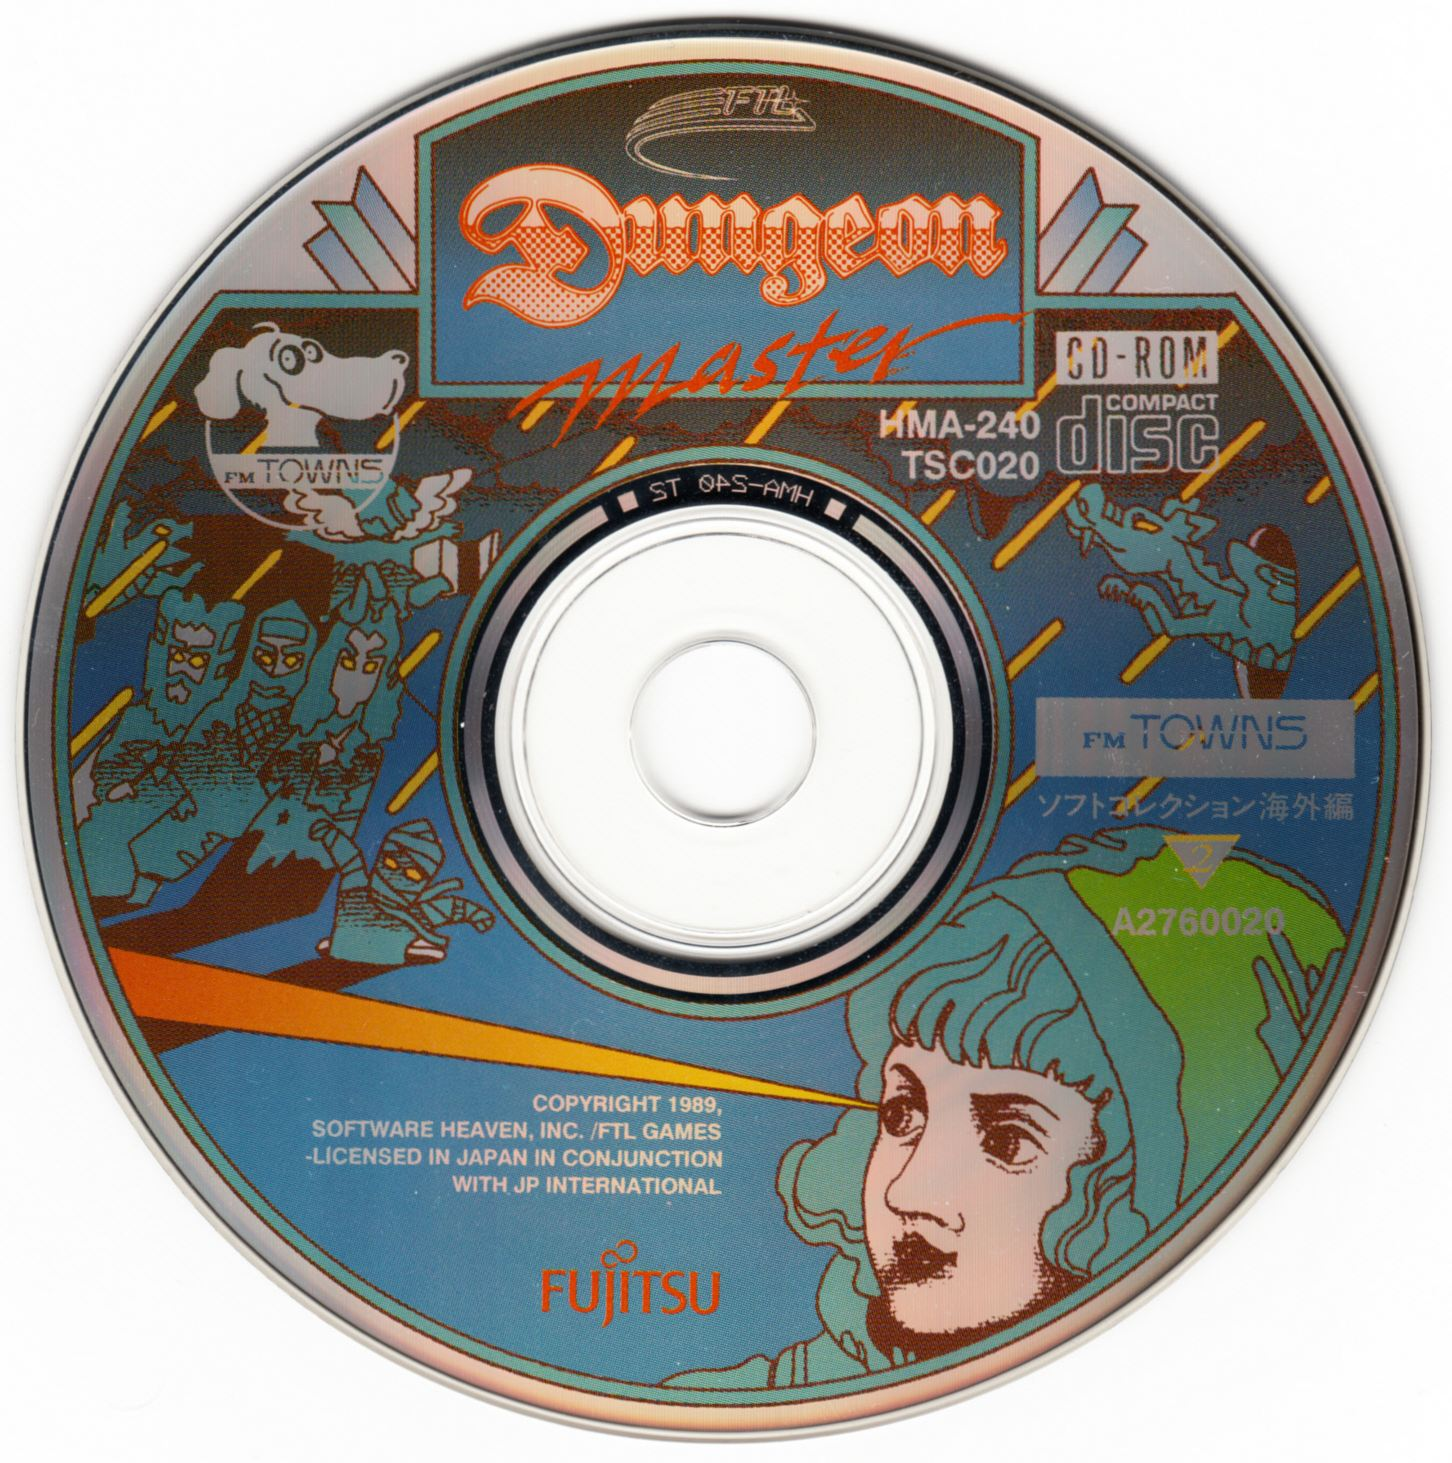 Game - Dungeon Master - JP - FM Towns - Compact Disc - Front - Scan